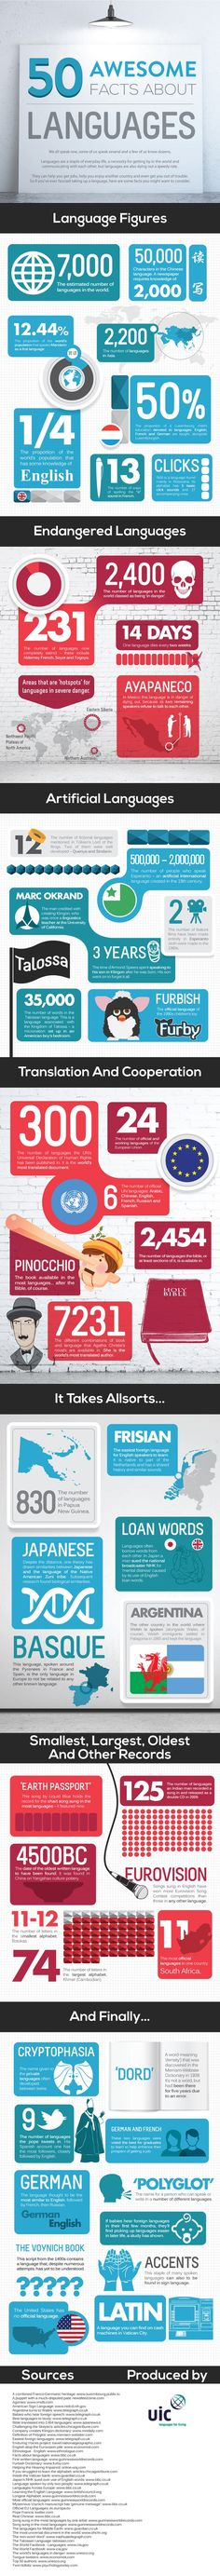 Our infographic has some amazing facts and figures about languages.